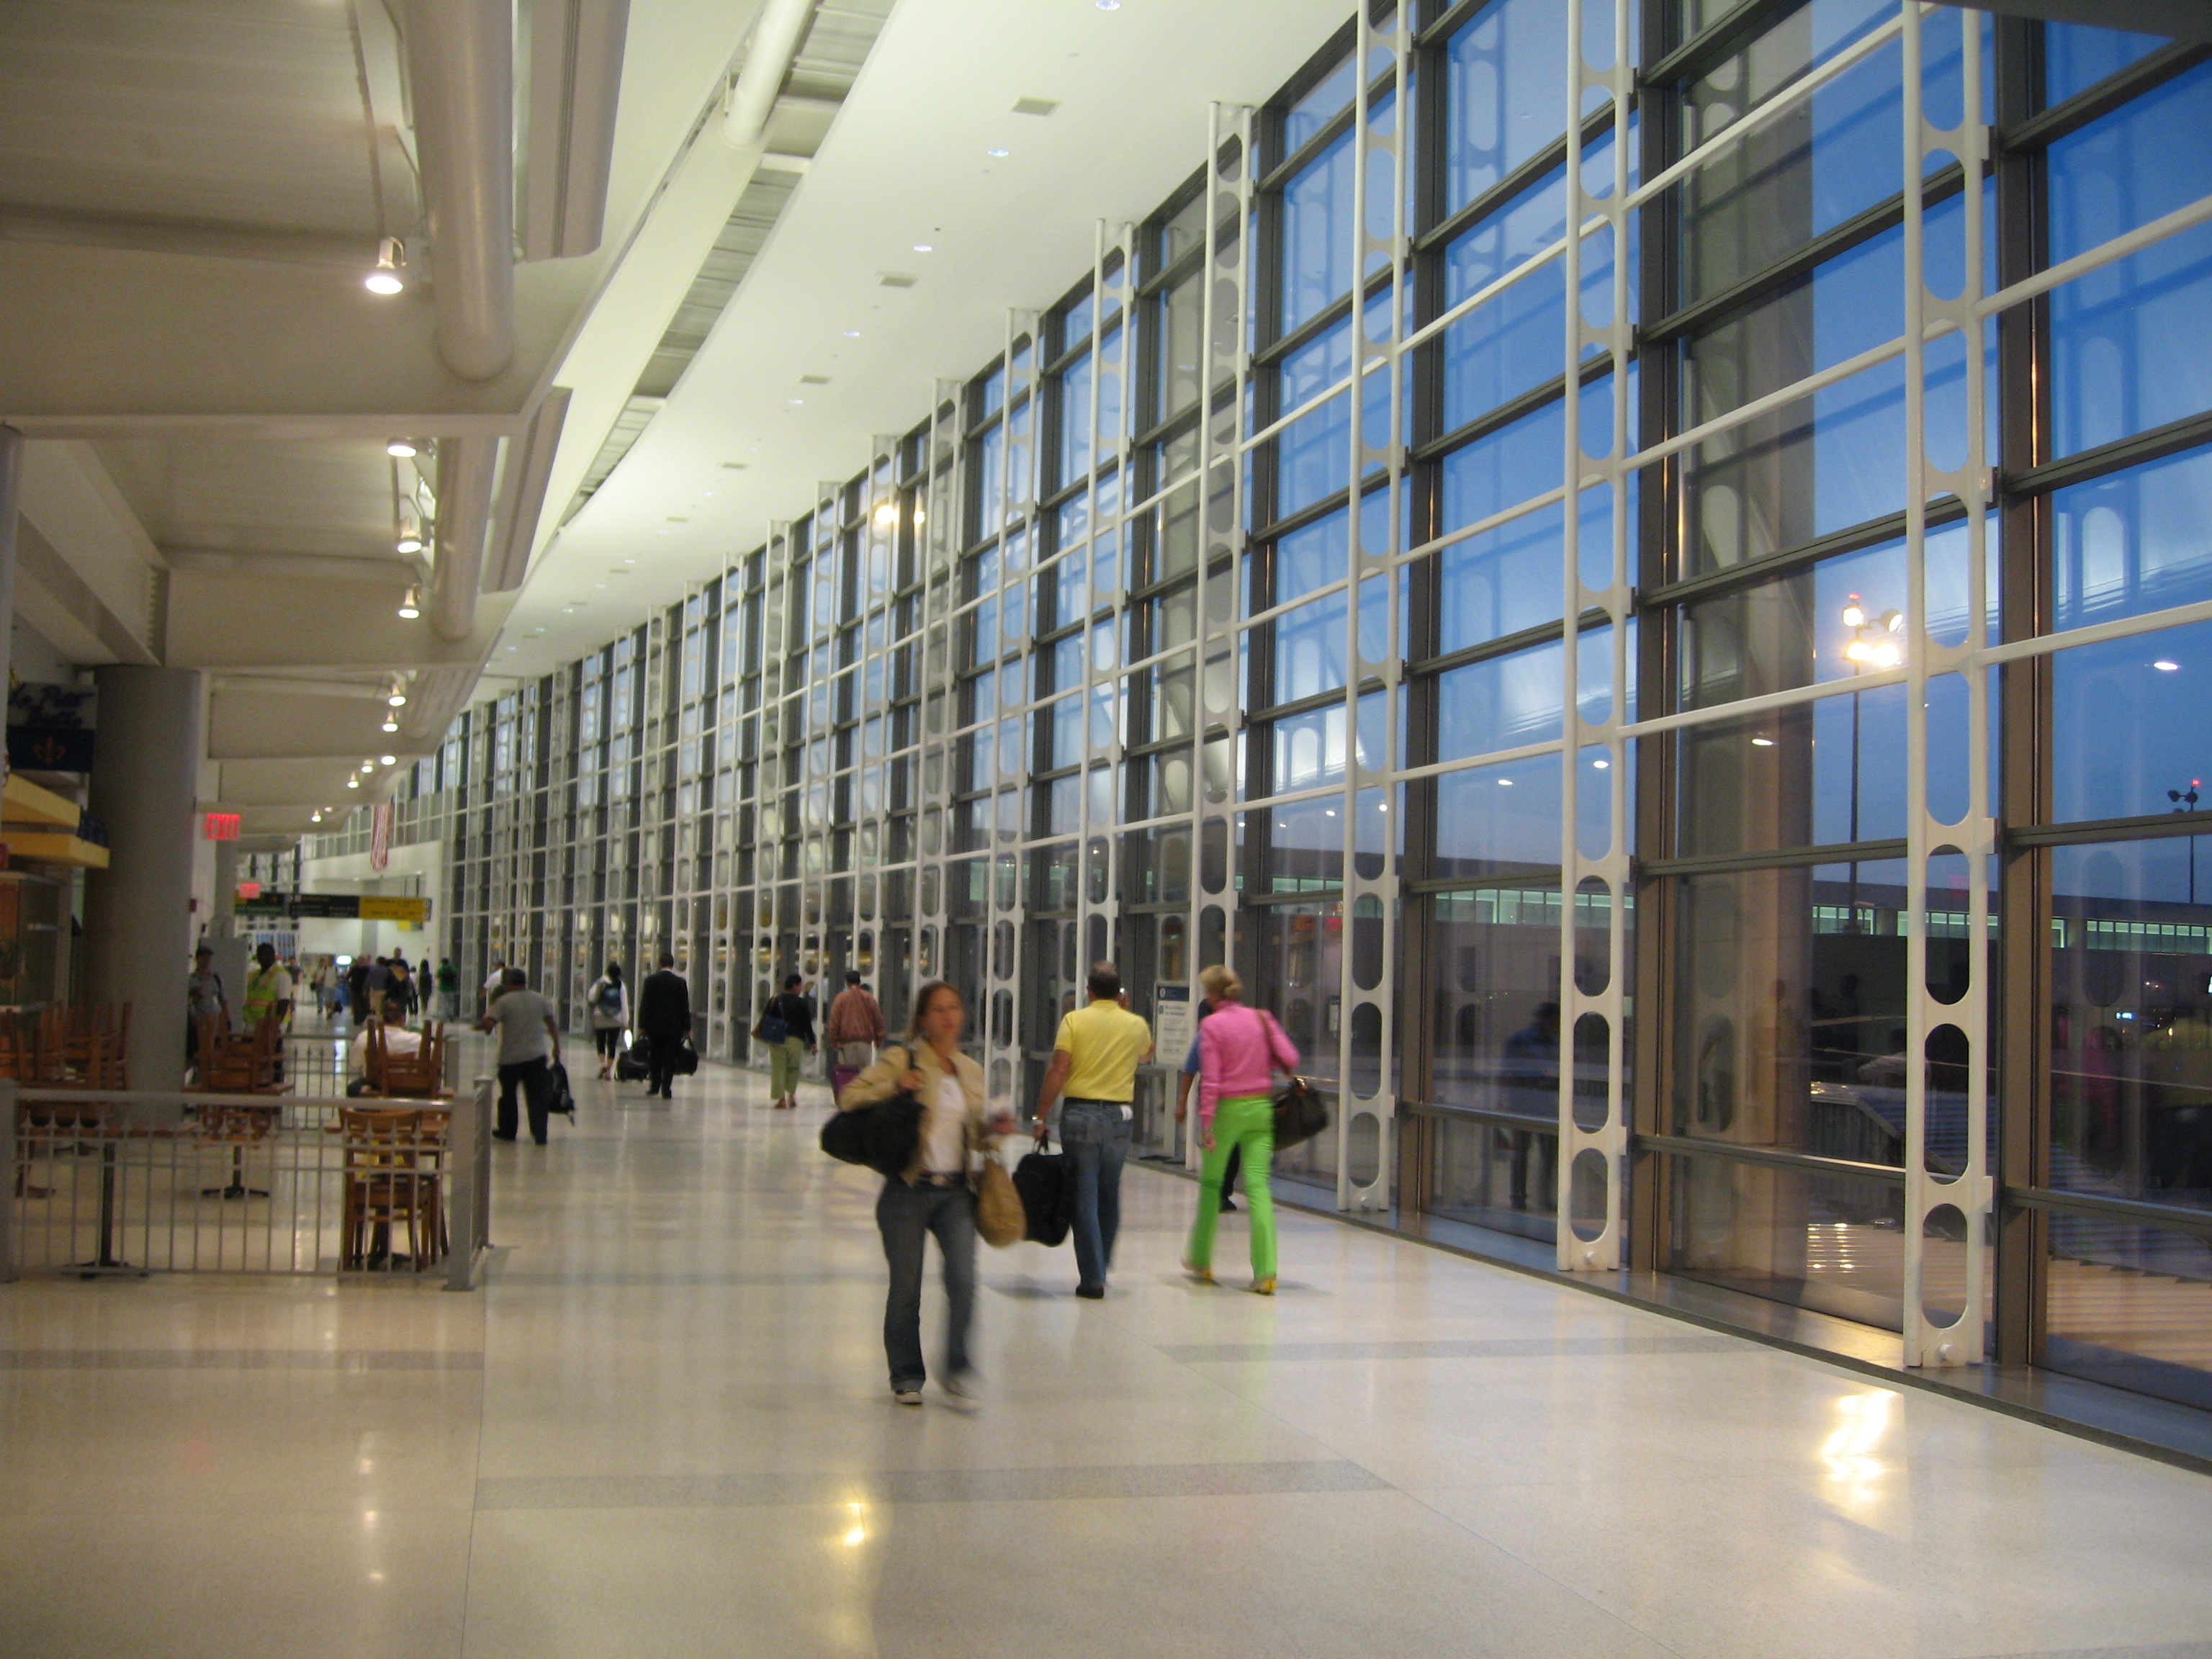 Newark Airport S Light Fixtures Shed Light On Much More